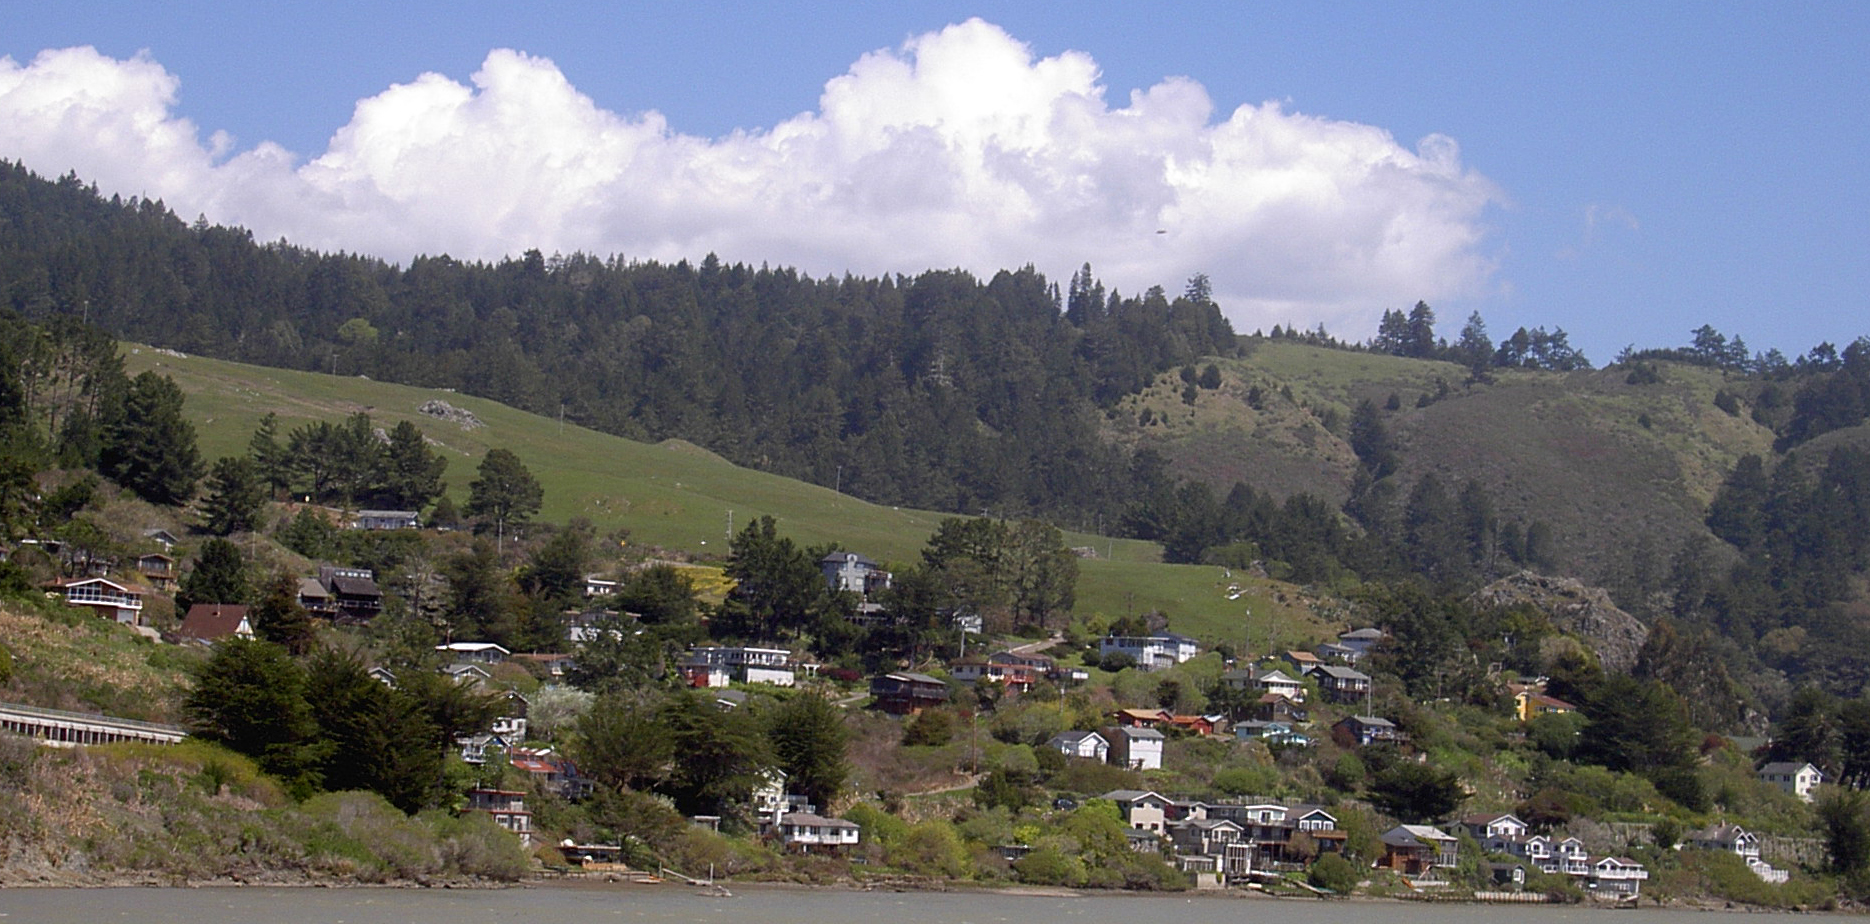 Hidden Gem In California For a Great Vacation-Town of Jenner